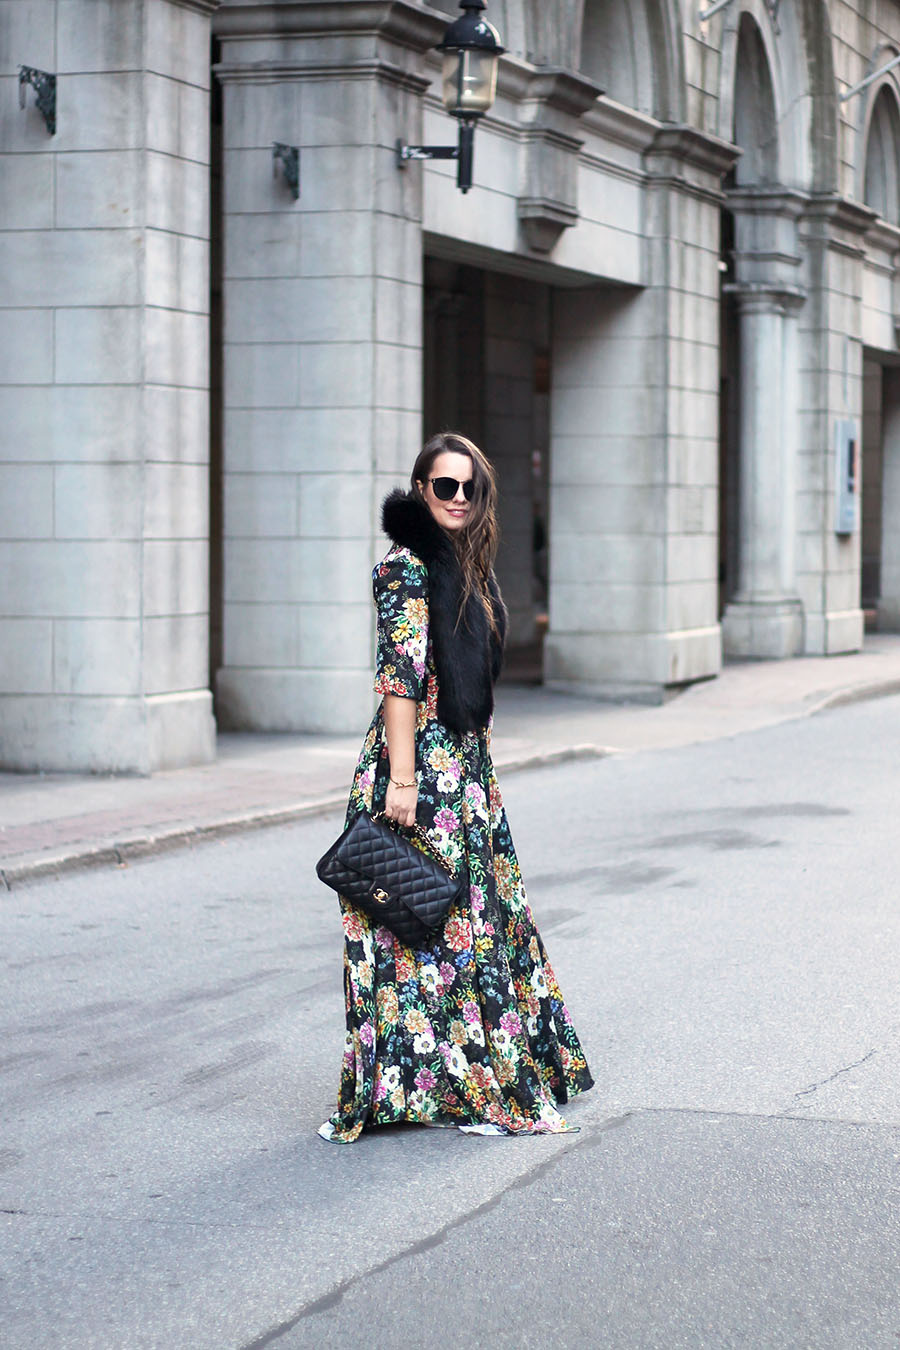 toronto-street-style-fashion-bloggers-a-side-of-vogue